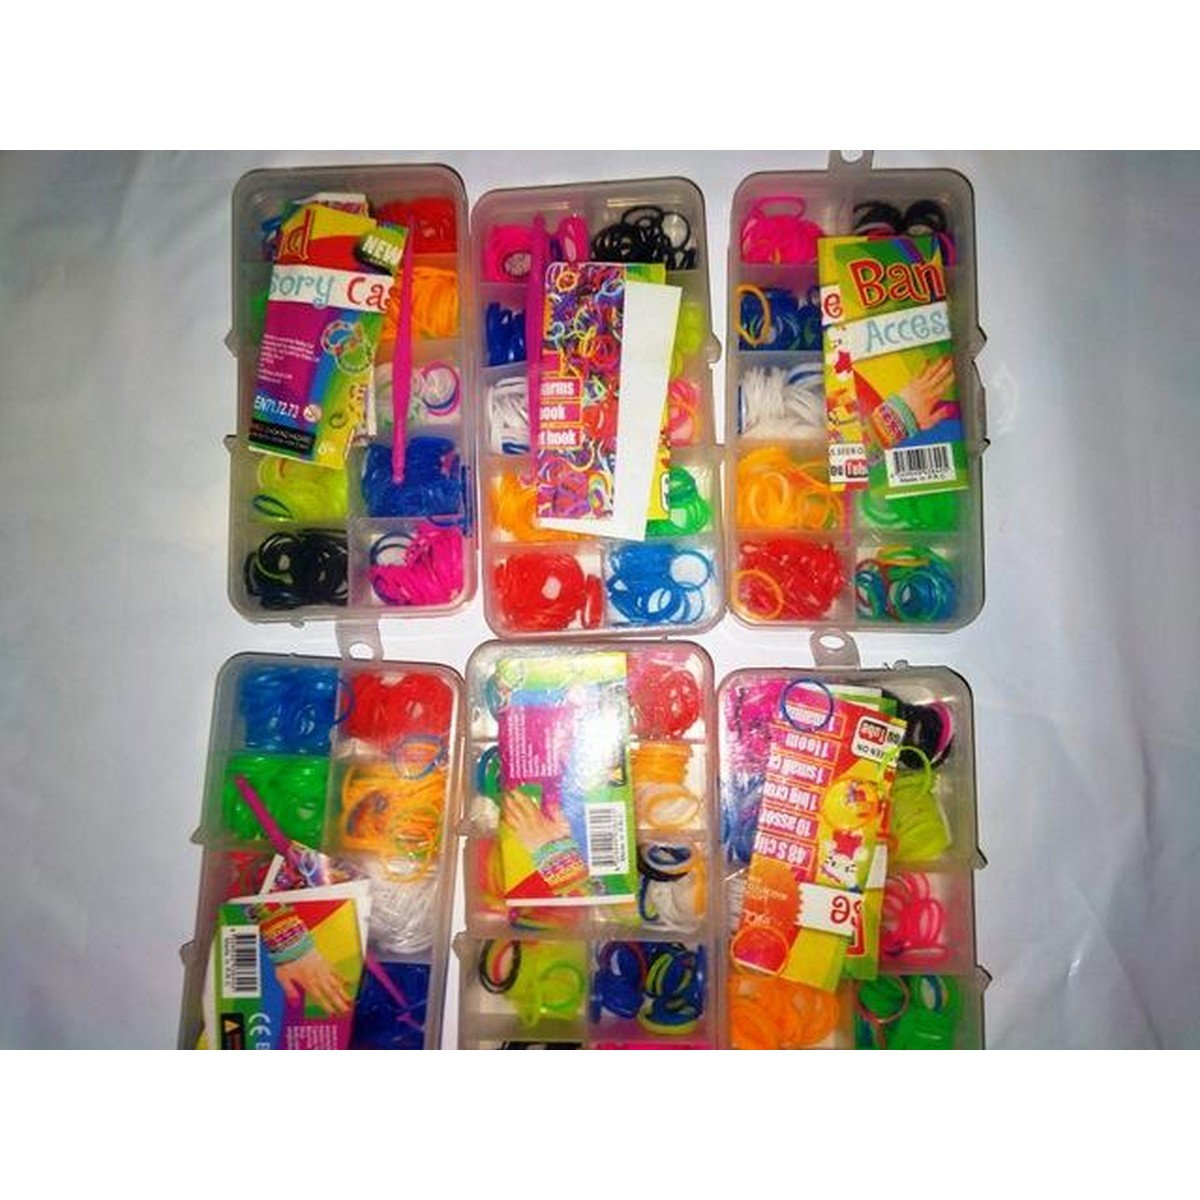 Top Selling Children's Toys DIY 350 Colorful Rubber Loom Bands Refill Kit with Accessories, Mixed Color